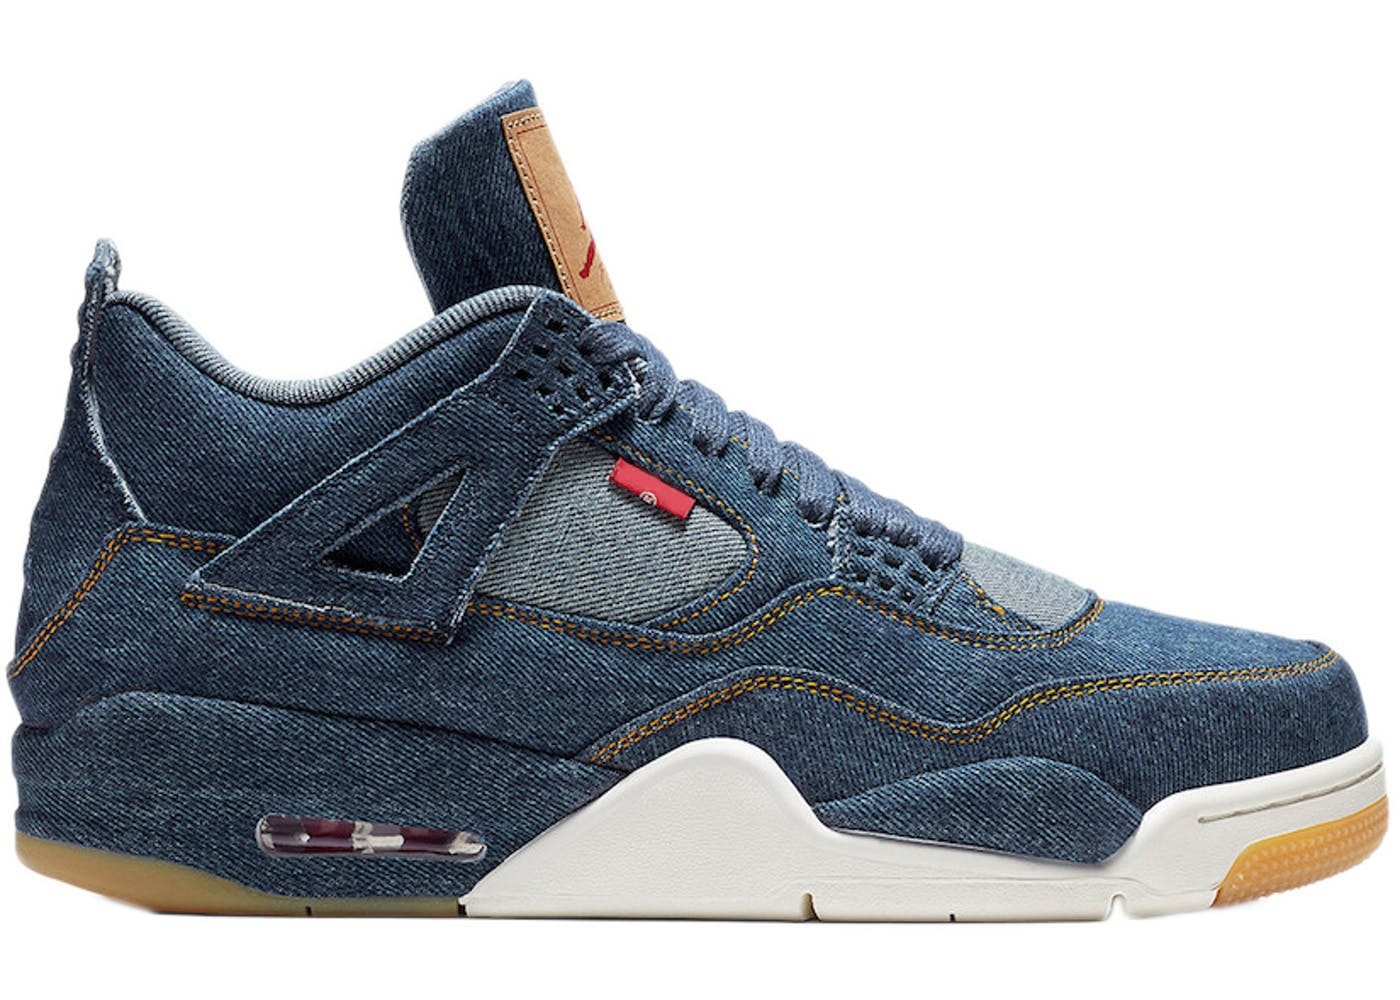 Jordan 4 Retro Levi's Denim (Blank Tag)